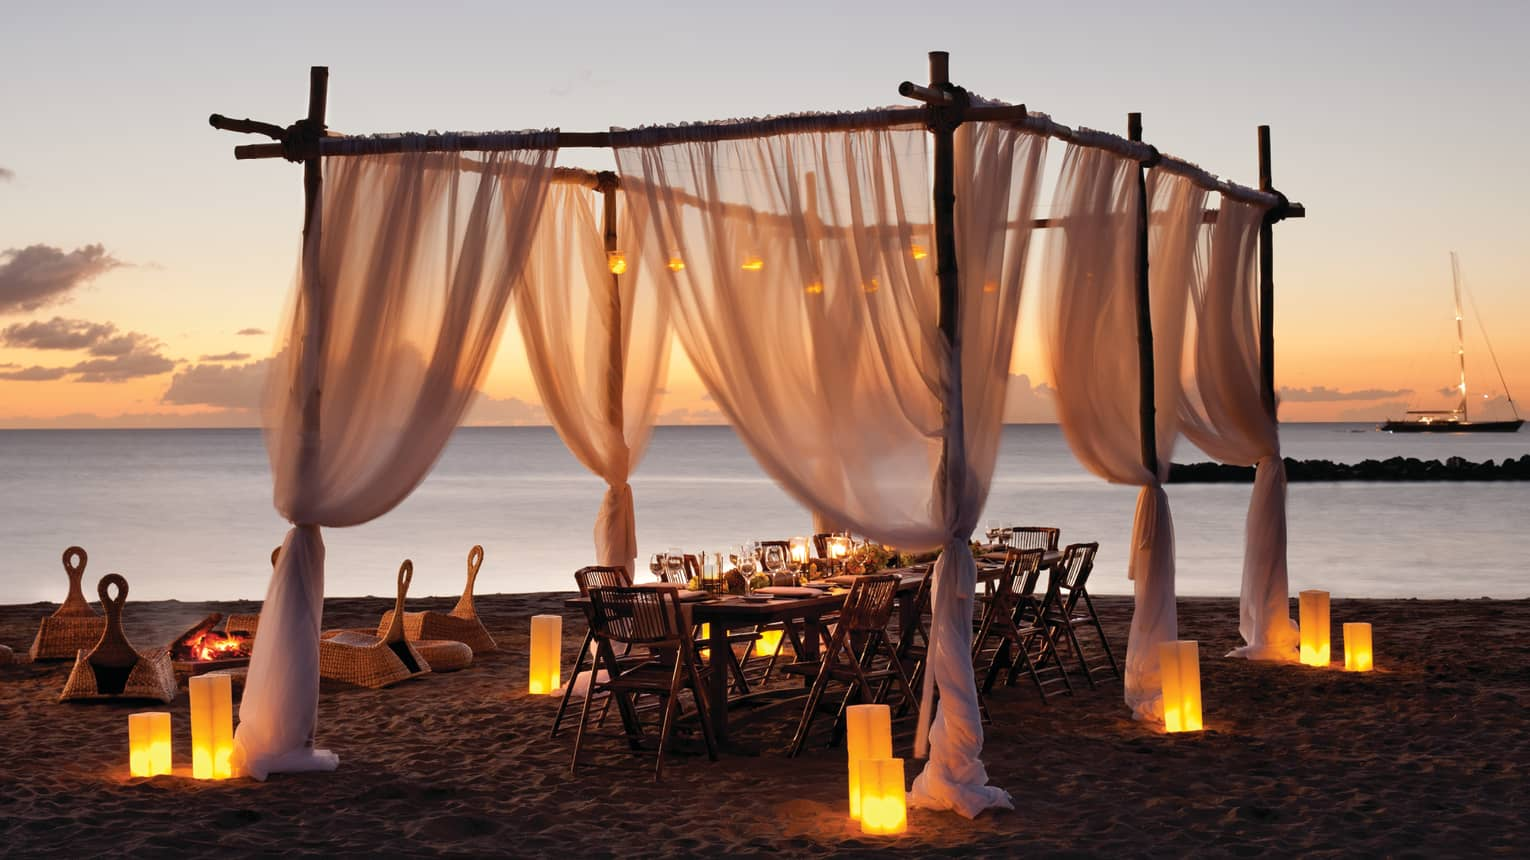 Private dining table under canopy on candle-lit beach at sunset